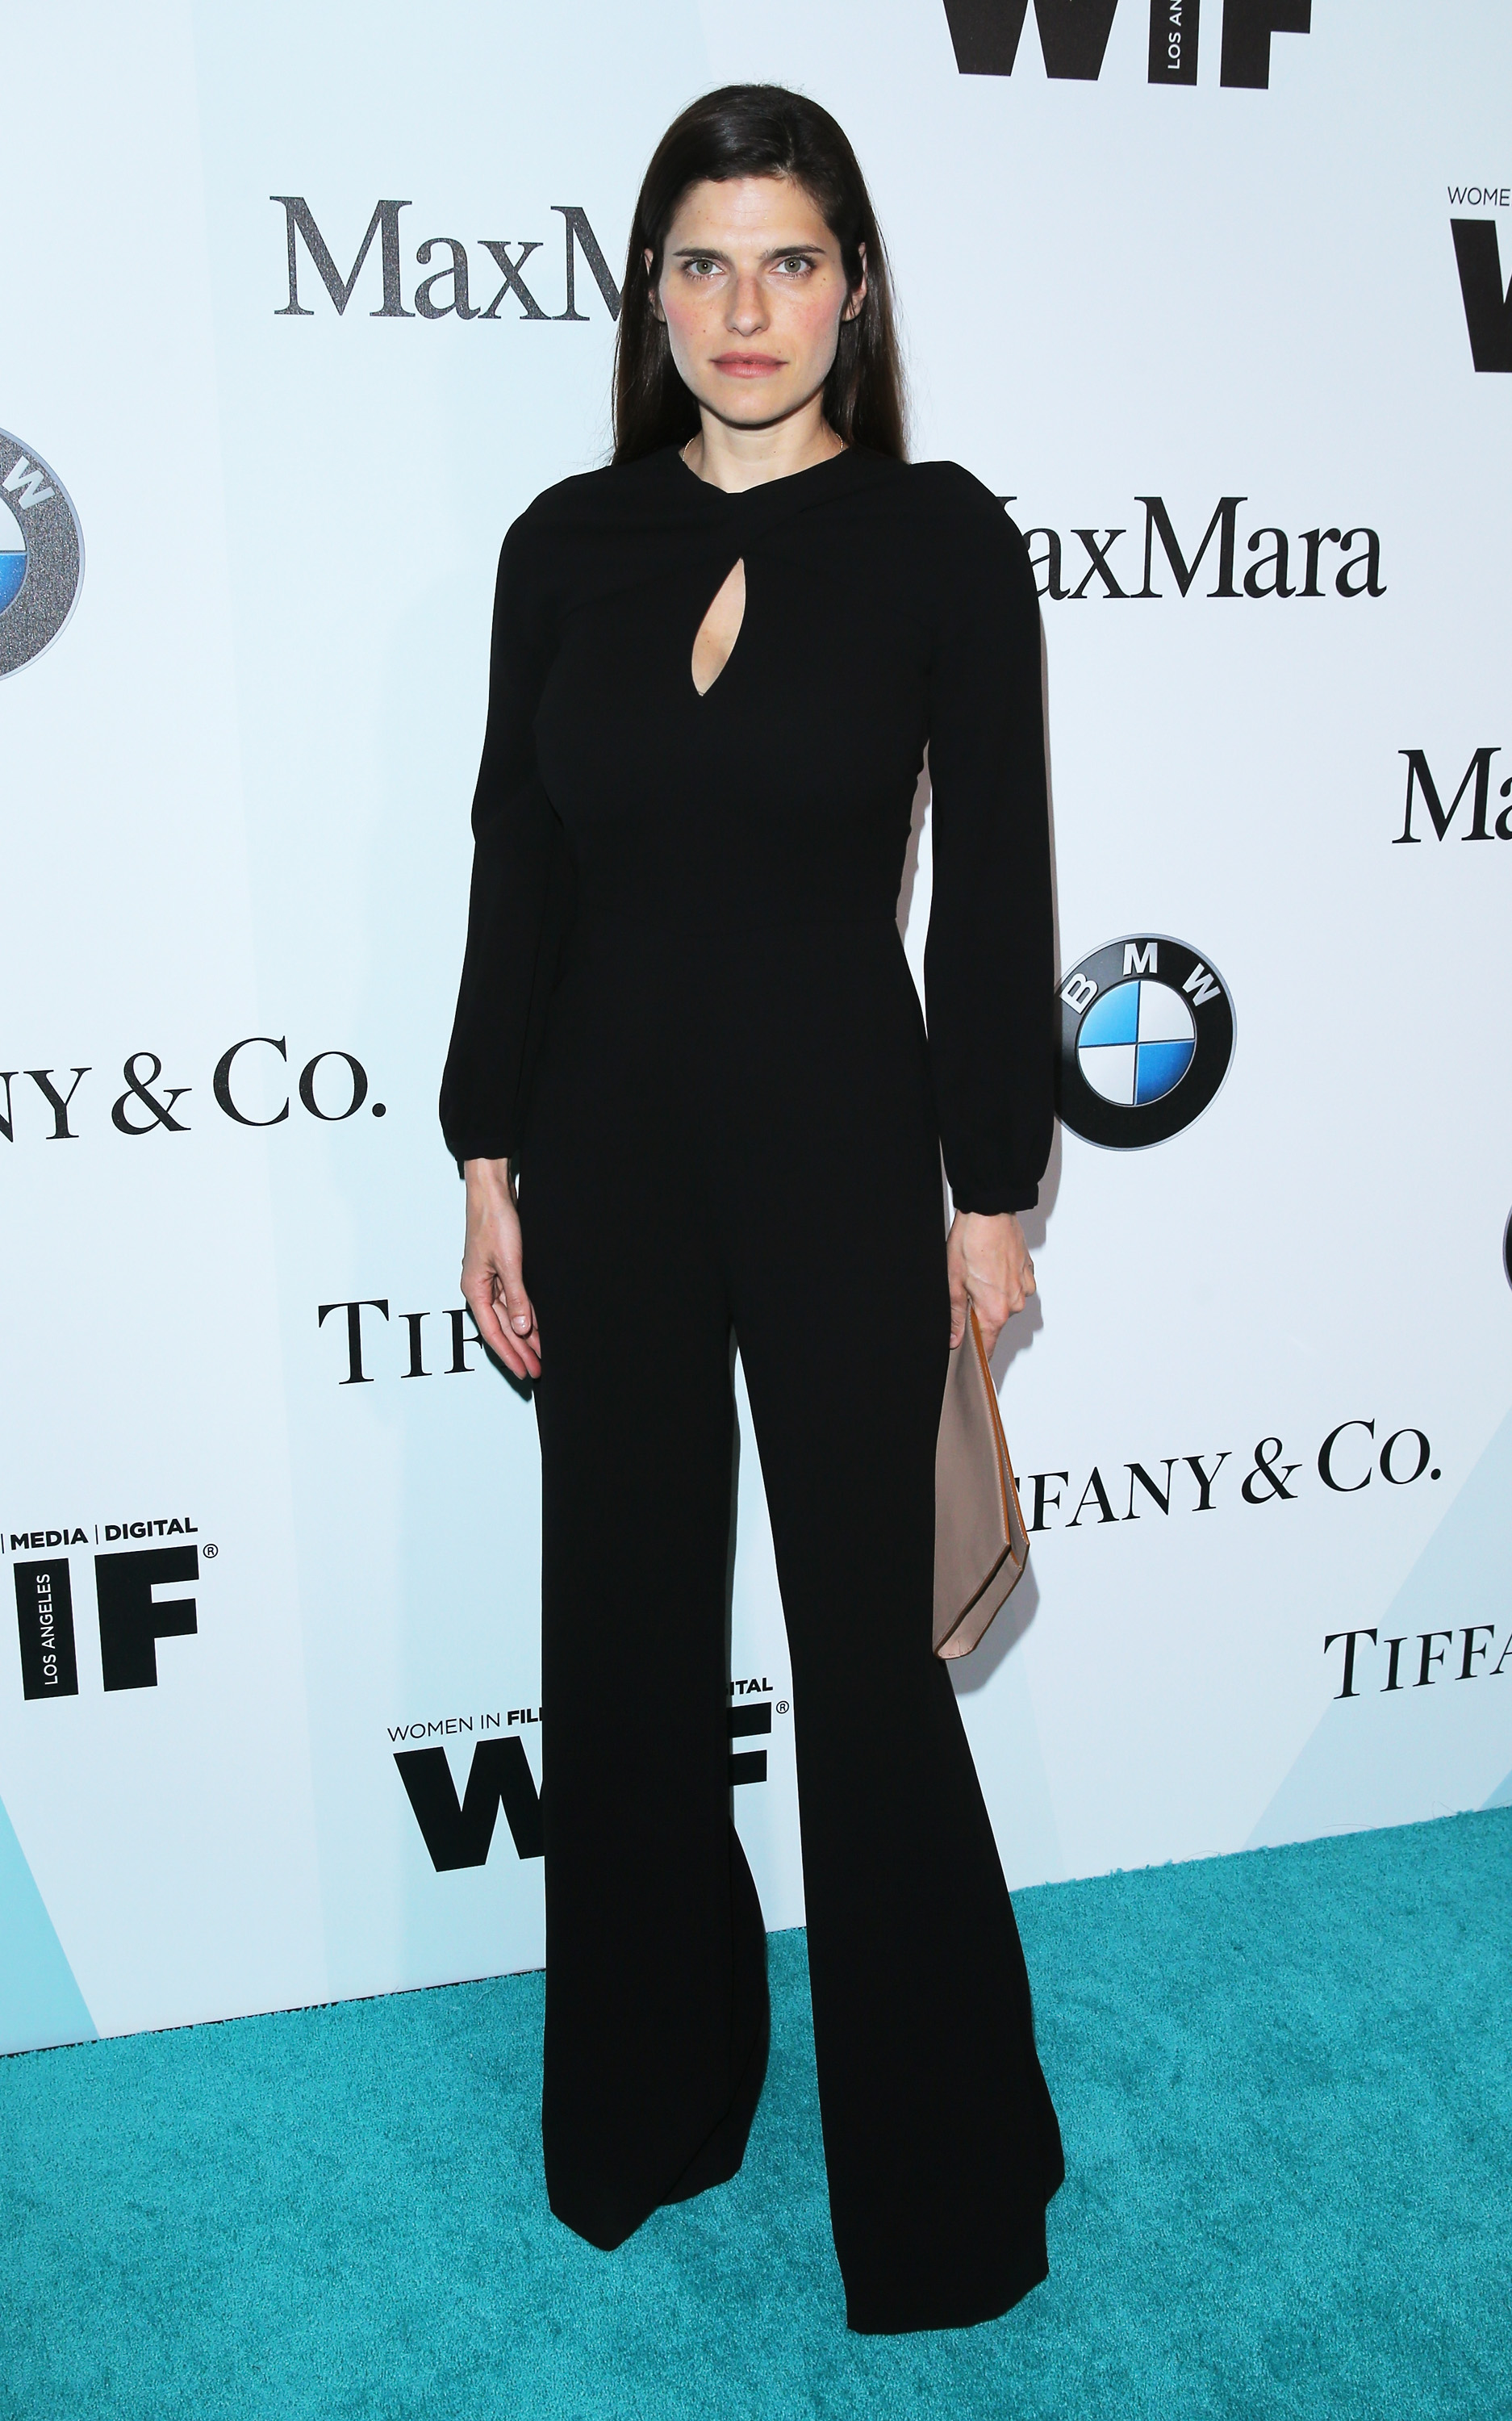 CENTURY CITY, CA - JUNE 16: Actress Lake Bell attends the Women In Film 2015 Crystal + Lucy Awards Presented by Max Mara, BMW of North America, and Tiffany & Co. at the Hyatt Regency Century Plaza on June 16, 2015 in Century City, California.  (Photo by Mark Davis/Getty Images for Women in Film)